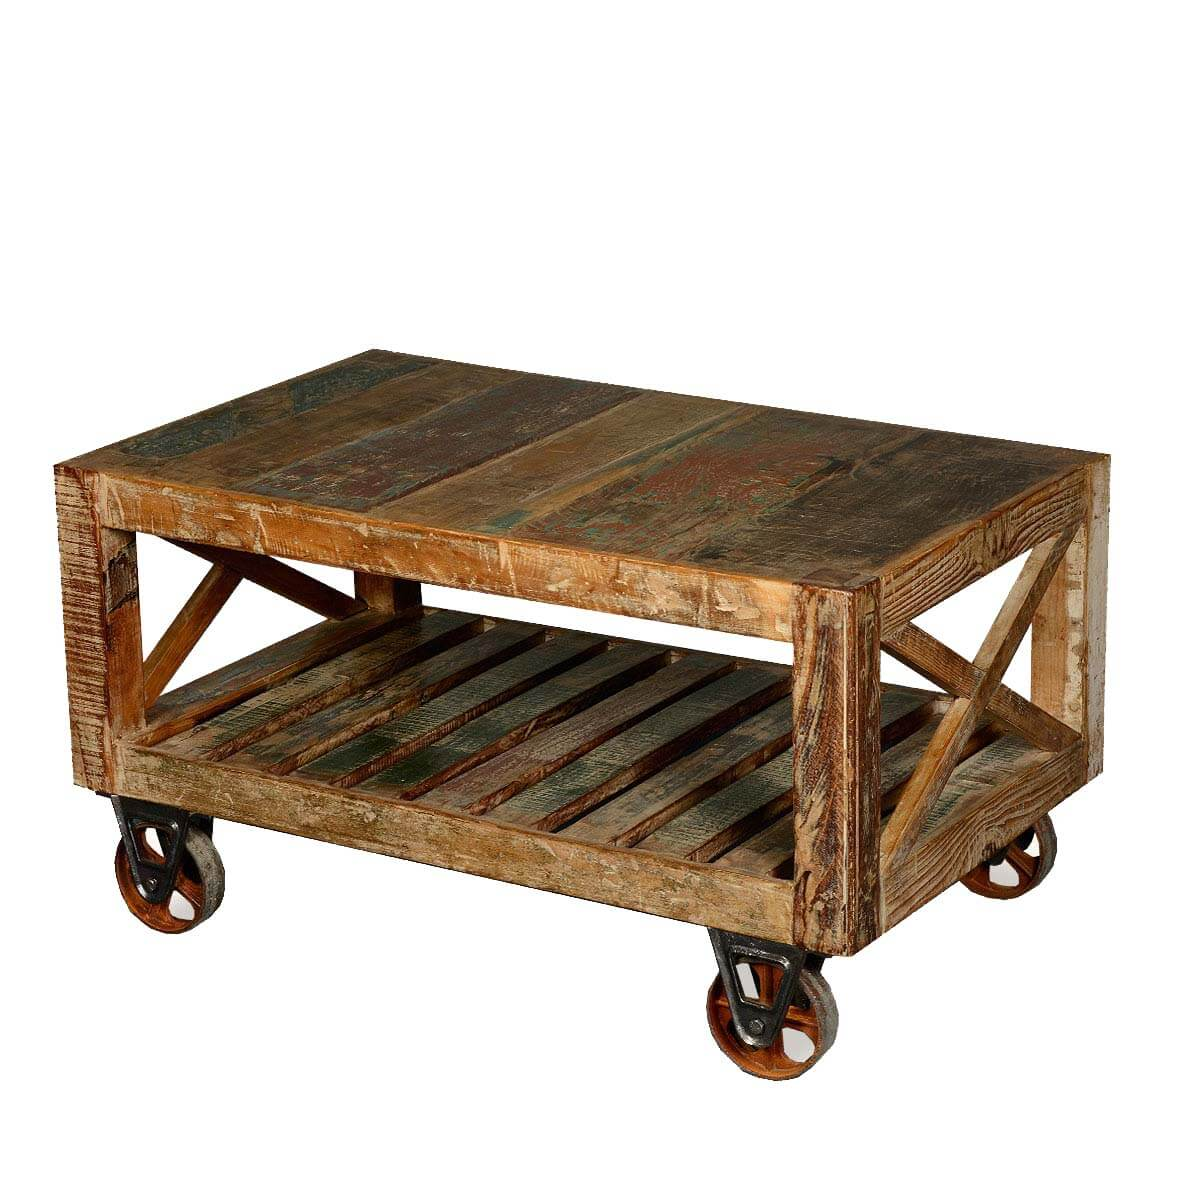 Industrial rustic reclaimed wood iron rolling double x coffee table Rustic wood and metal coffee table